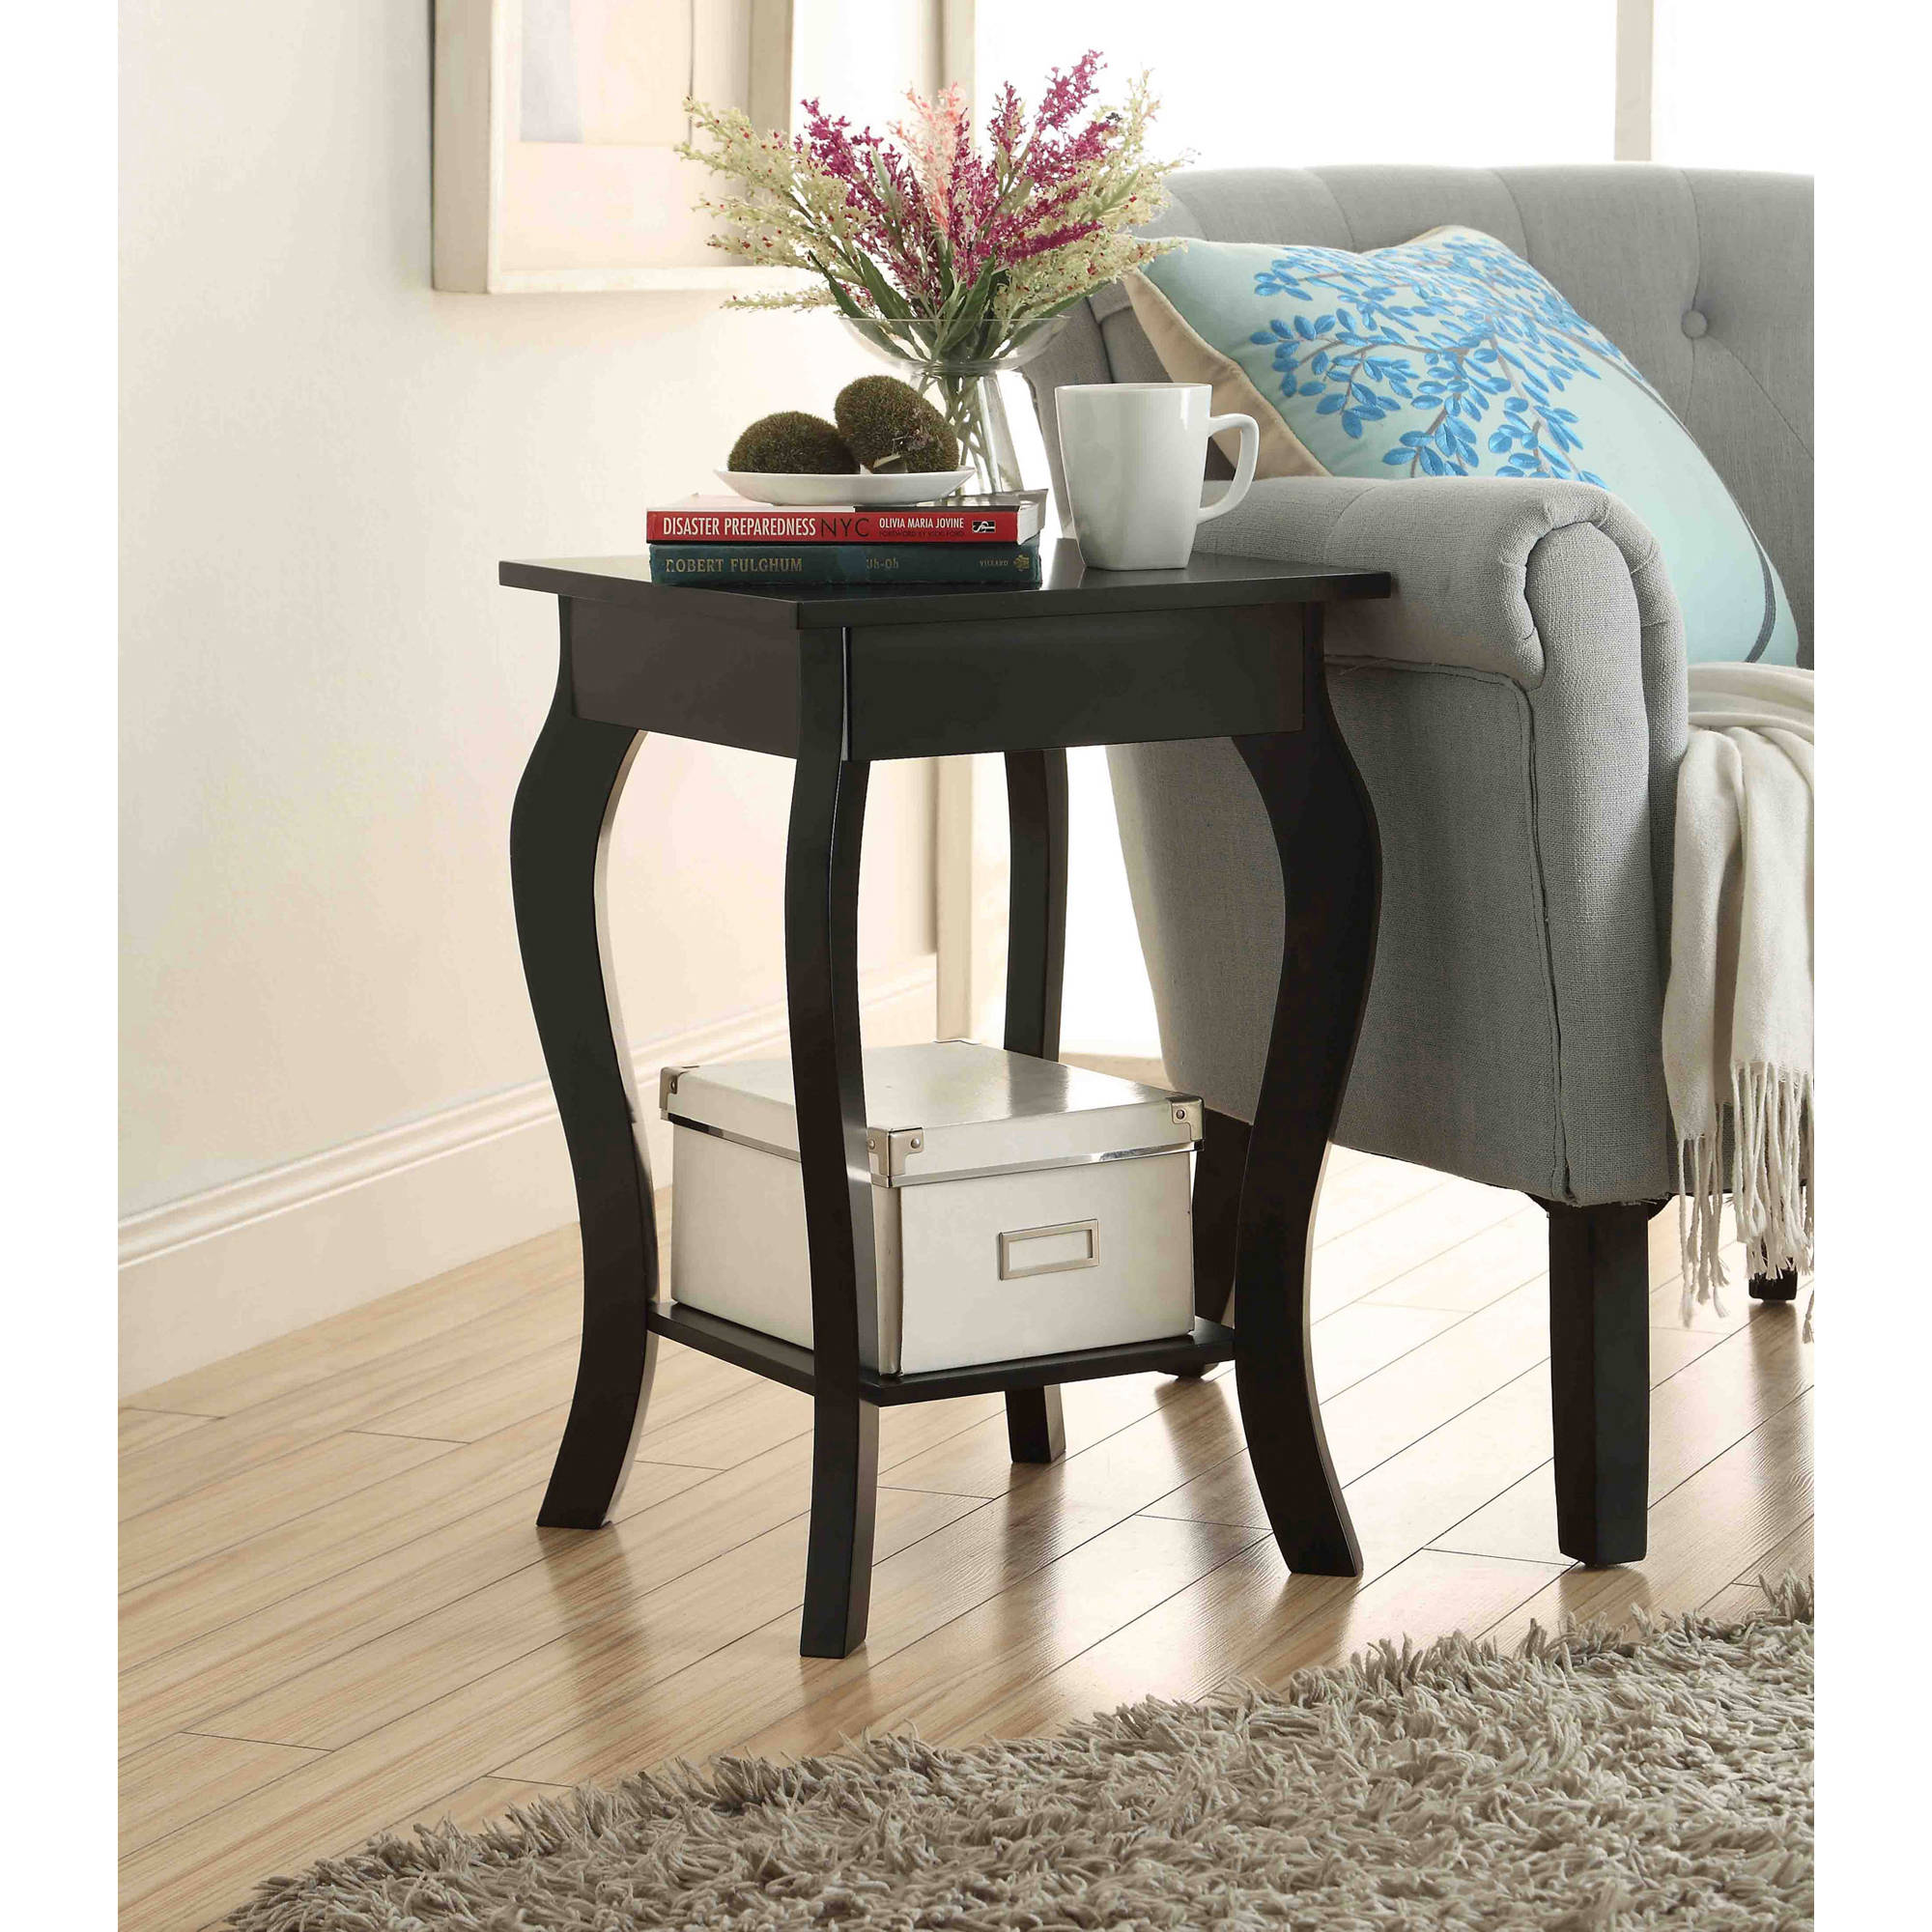 delectable target accent end tables white for bench and storage ott kijiji furniture decorative cabinet outdoor living gold antique tall threshold glass round modern room full